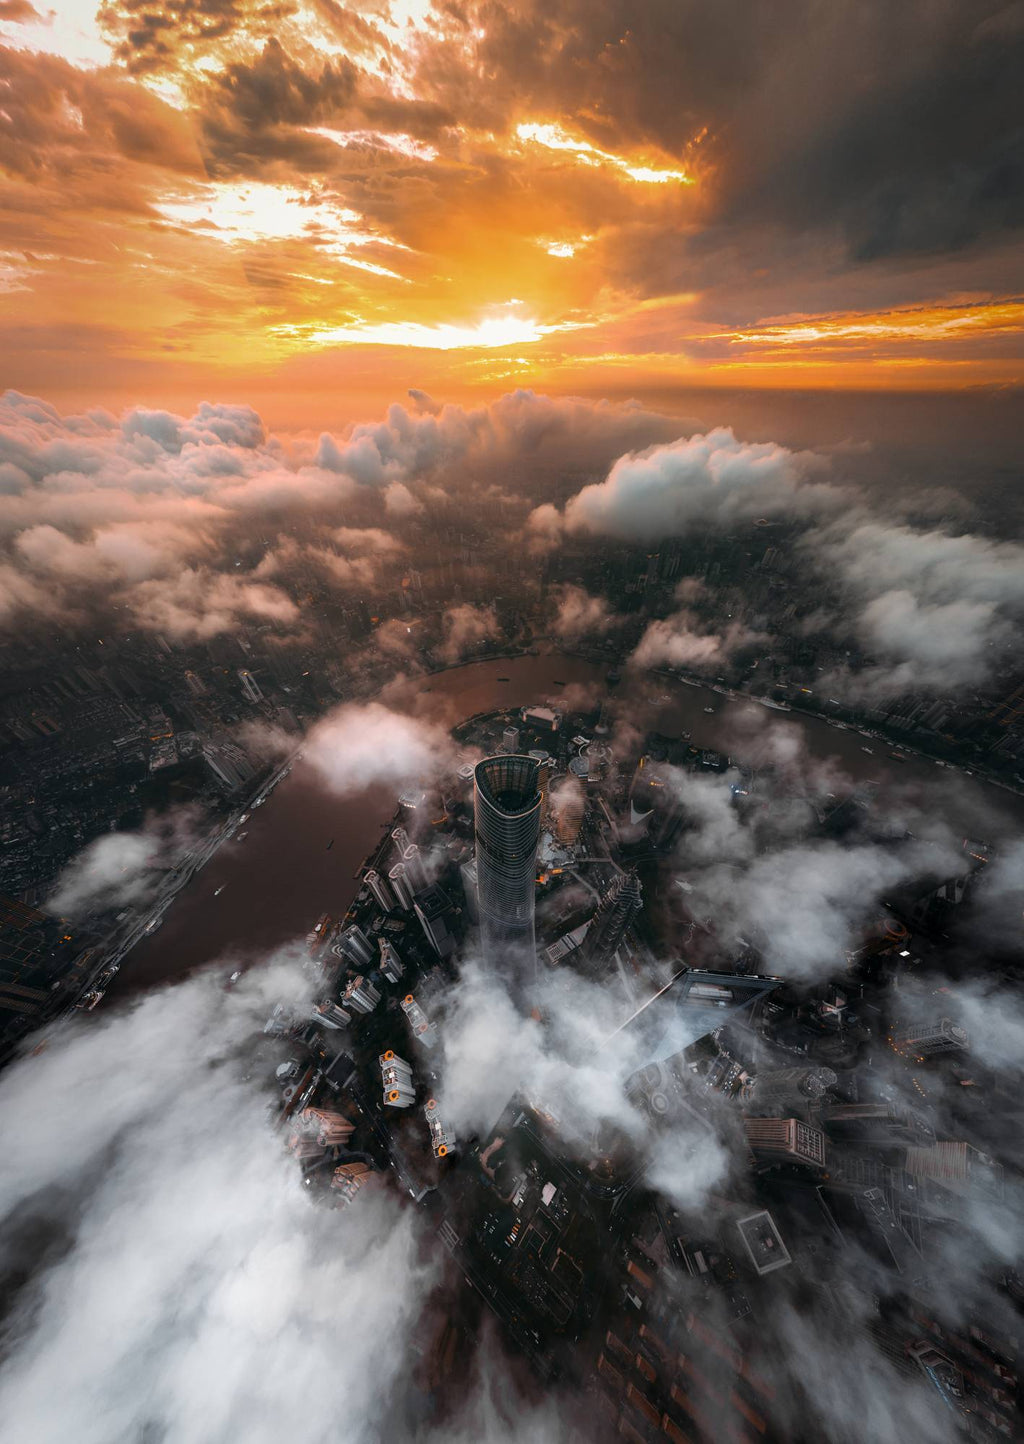 Heaven in the Clouds by John Huang - Print